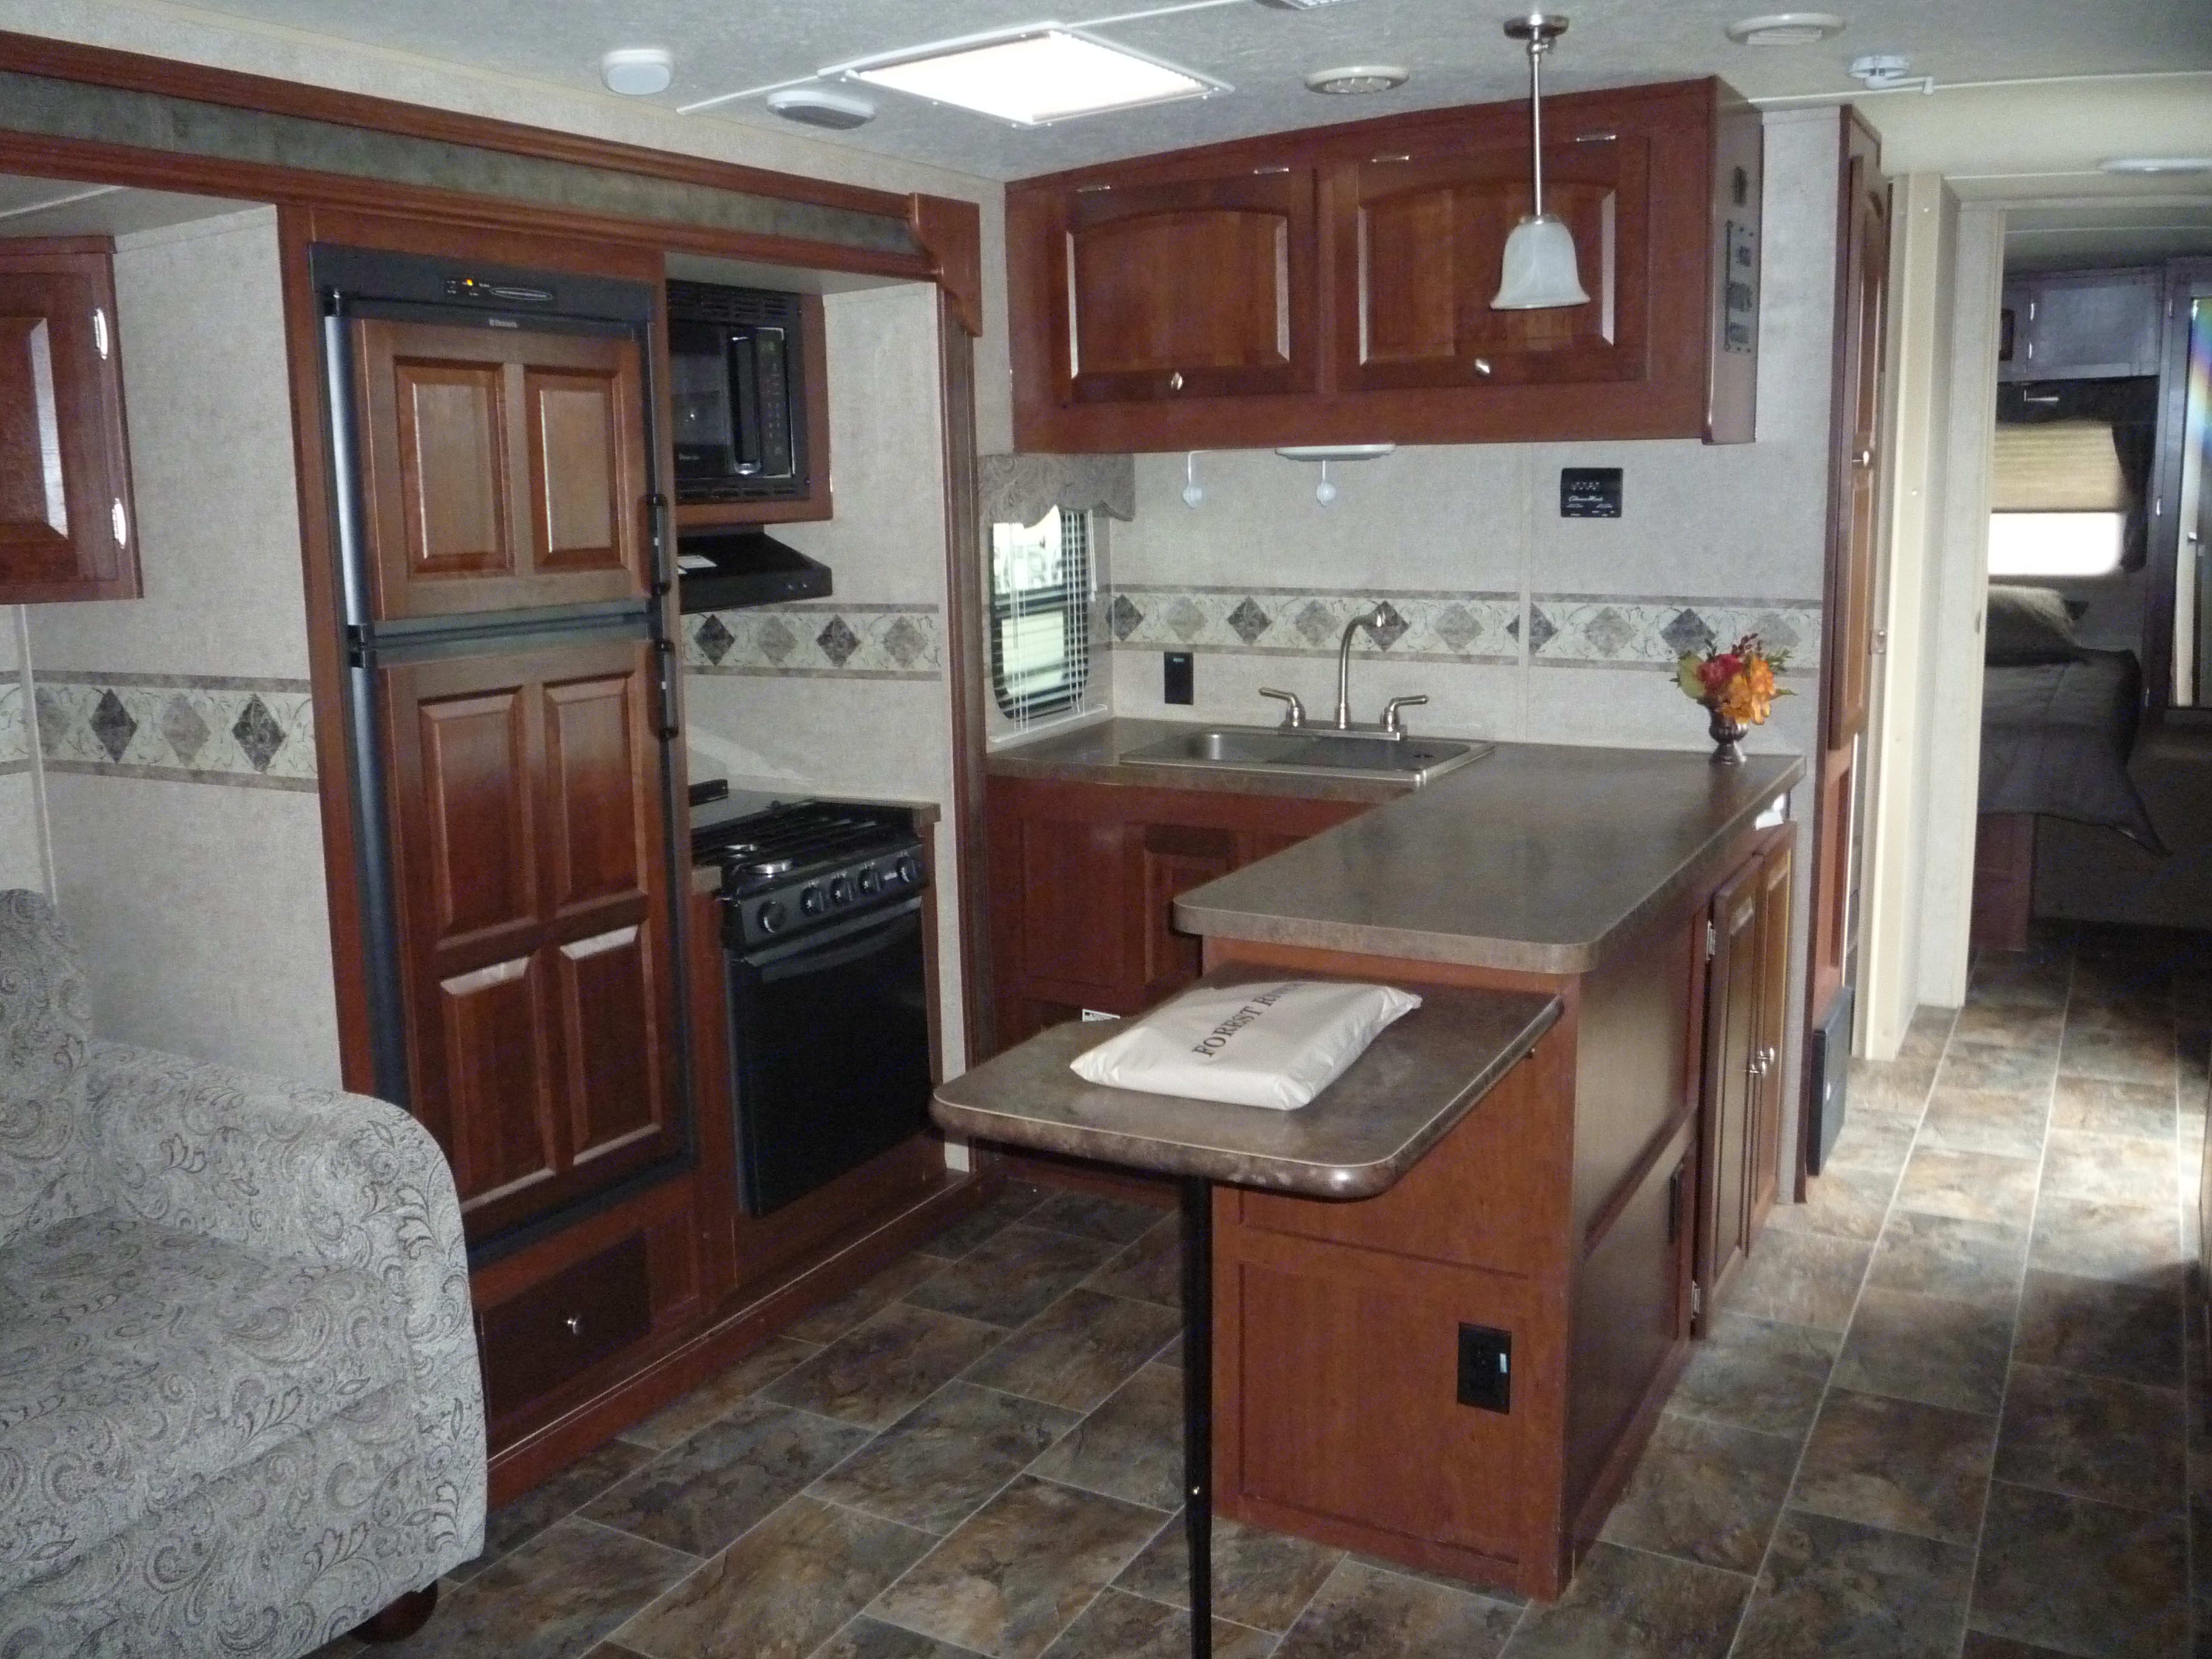 U Shaped Kitchen Refrigerator, Gas Oven, Stove Top, and Microwave, fully stocked with kitchenware. Forest River Rockwood Ultra Lite 2014